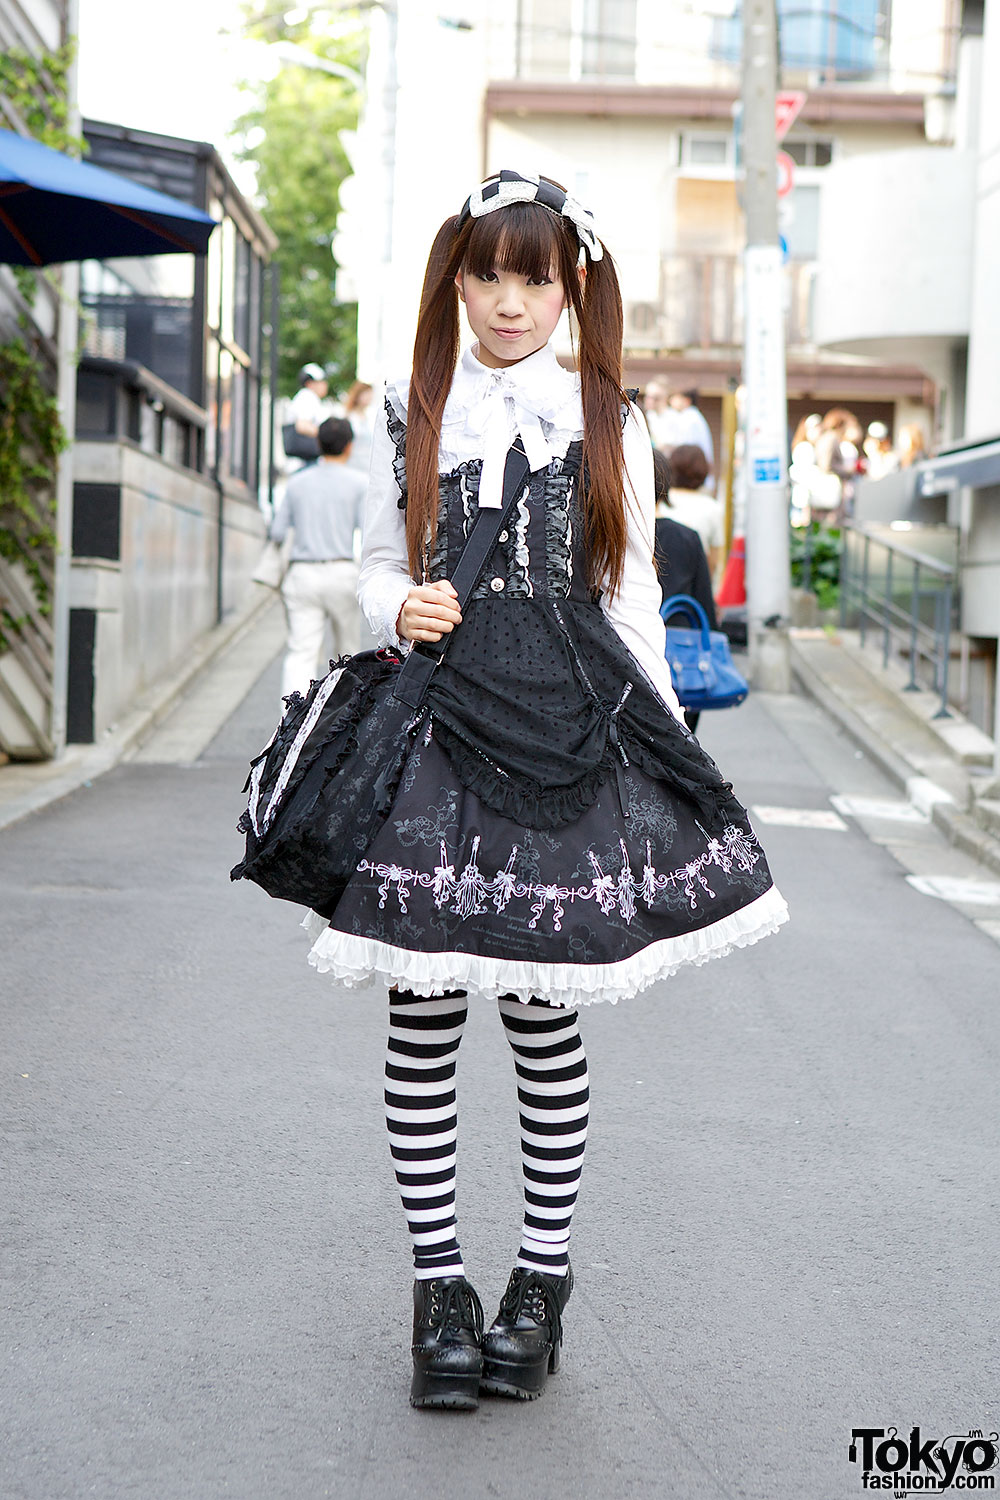 Gothic Lolita in Harajuku w/ Hangry&Angry Heart Bag & Frill